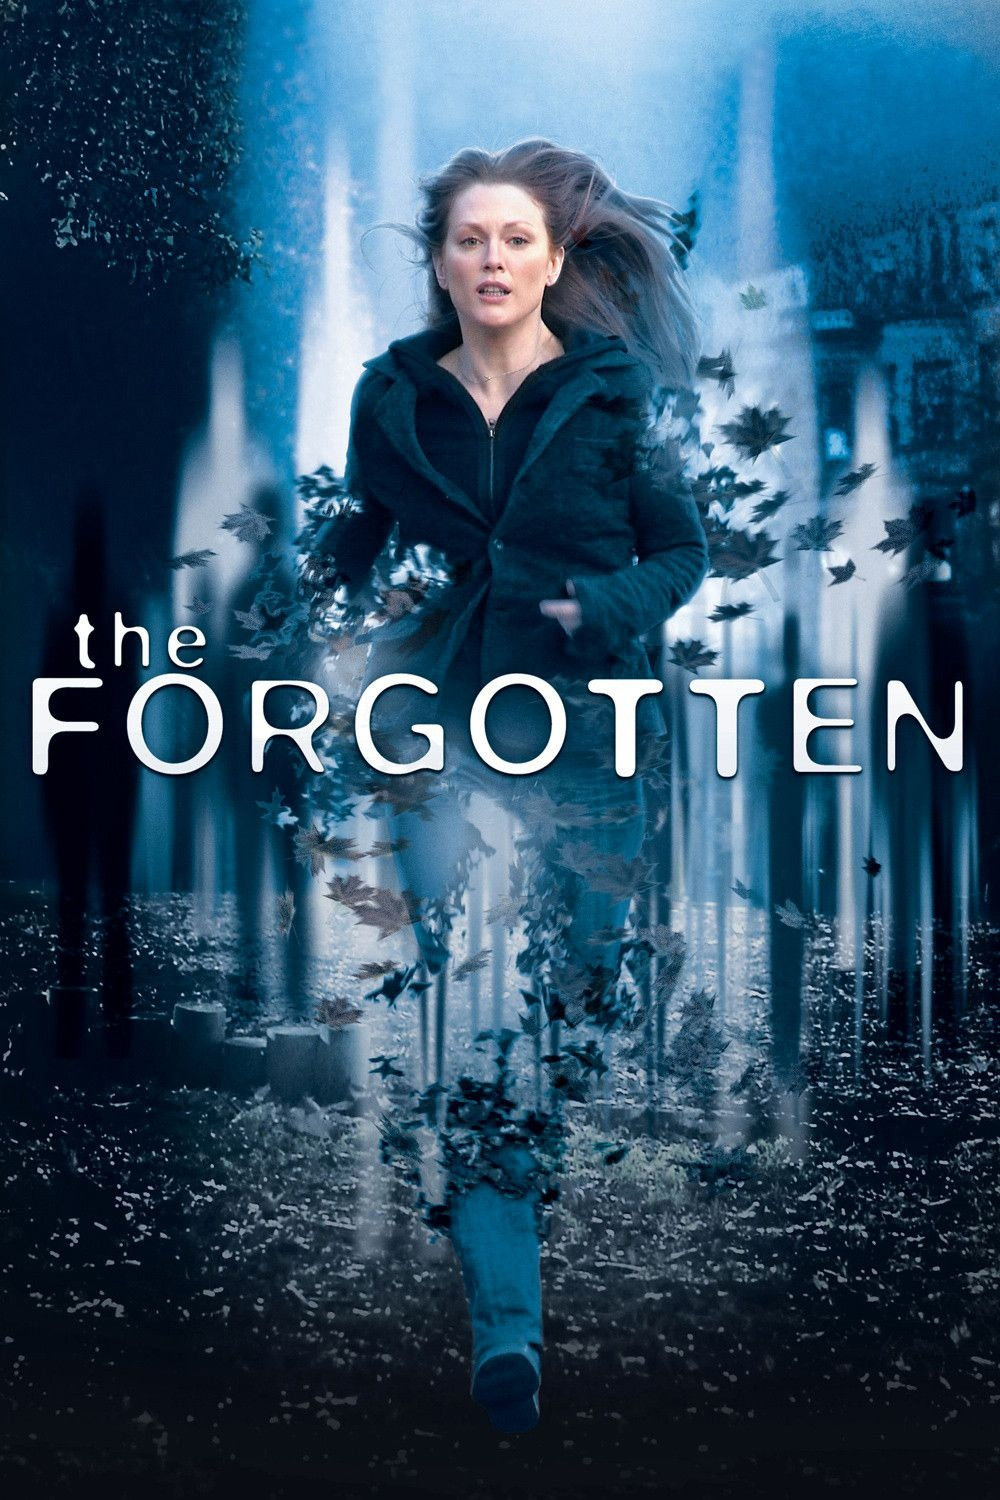 The Forgotten movie poster